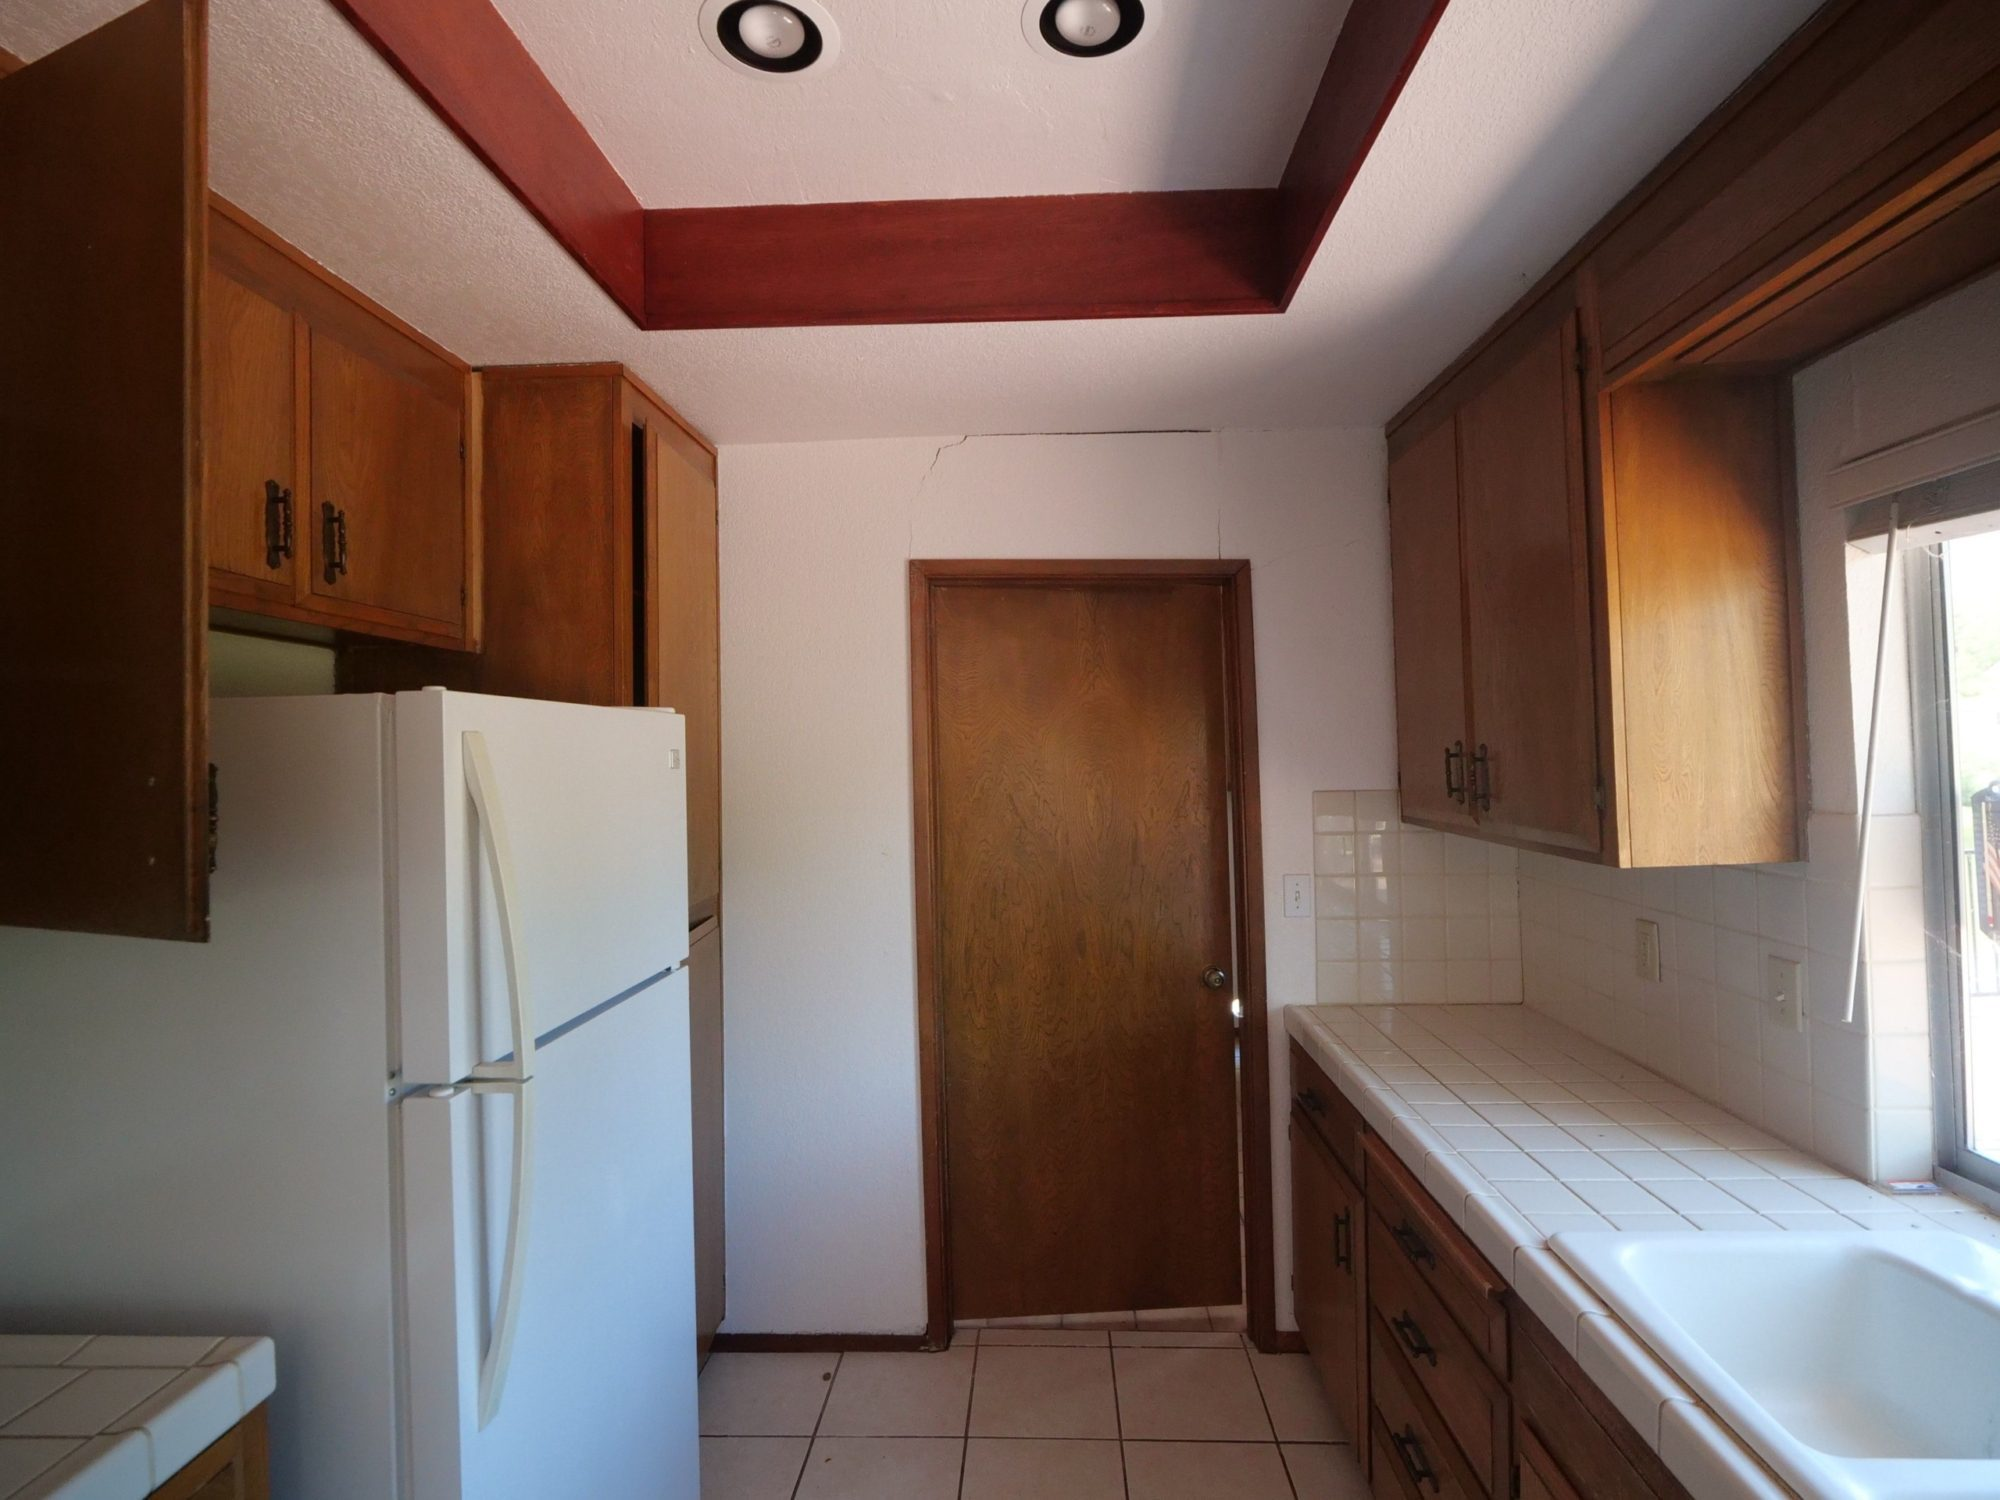 kitchen with a foundation crack above the door